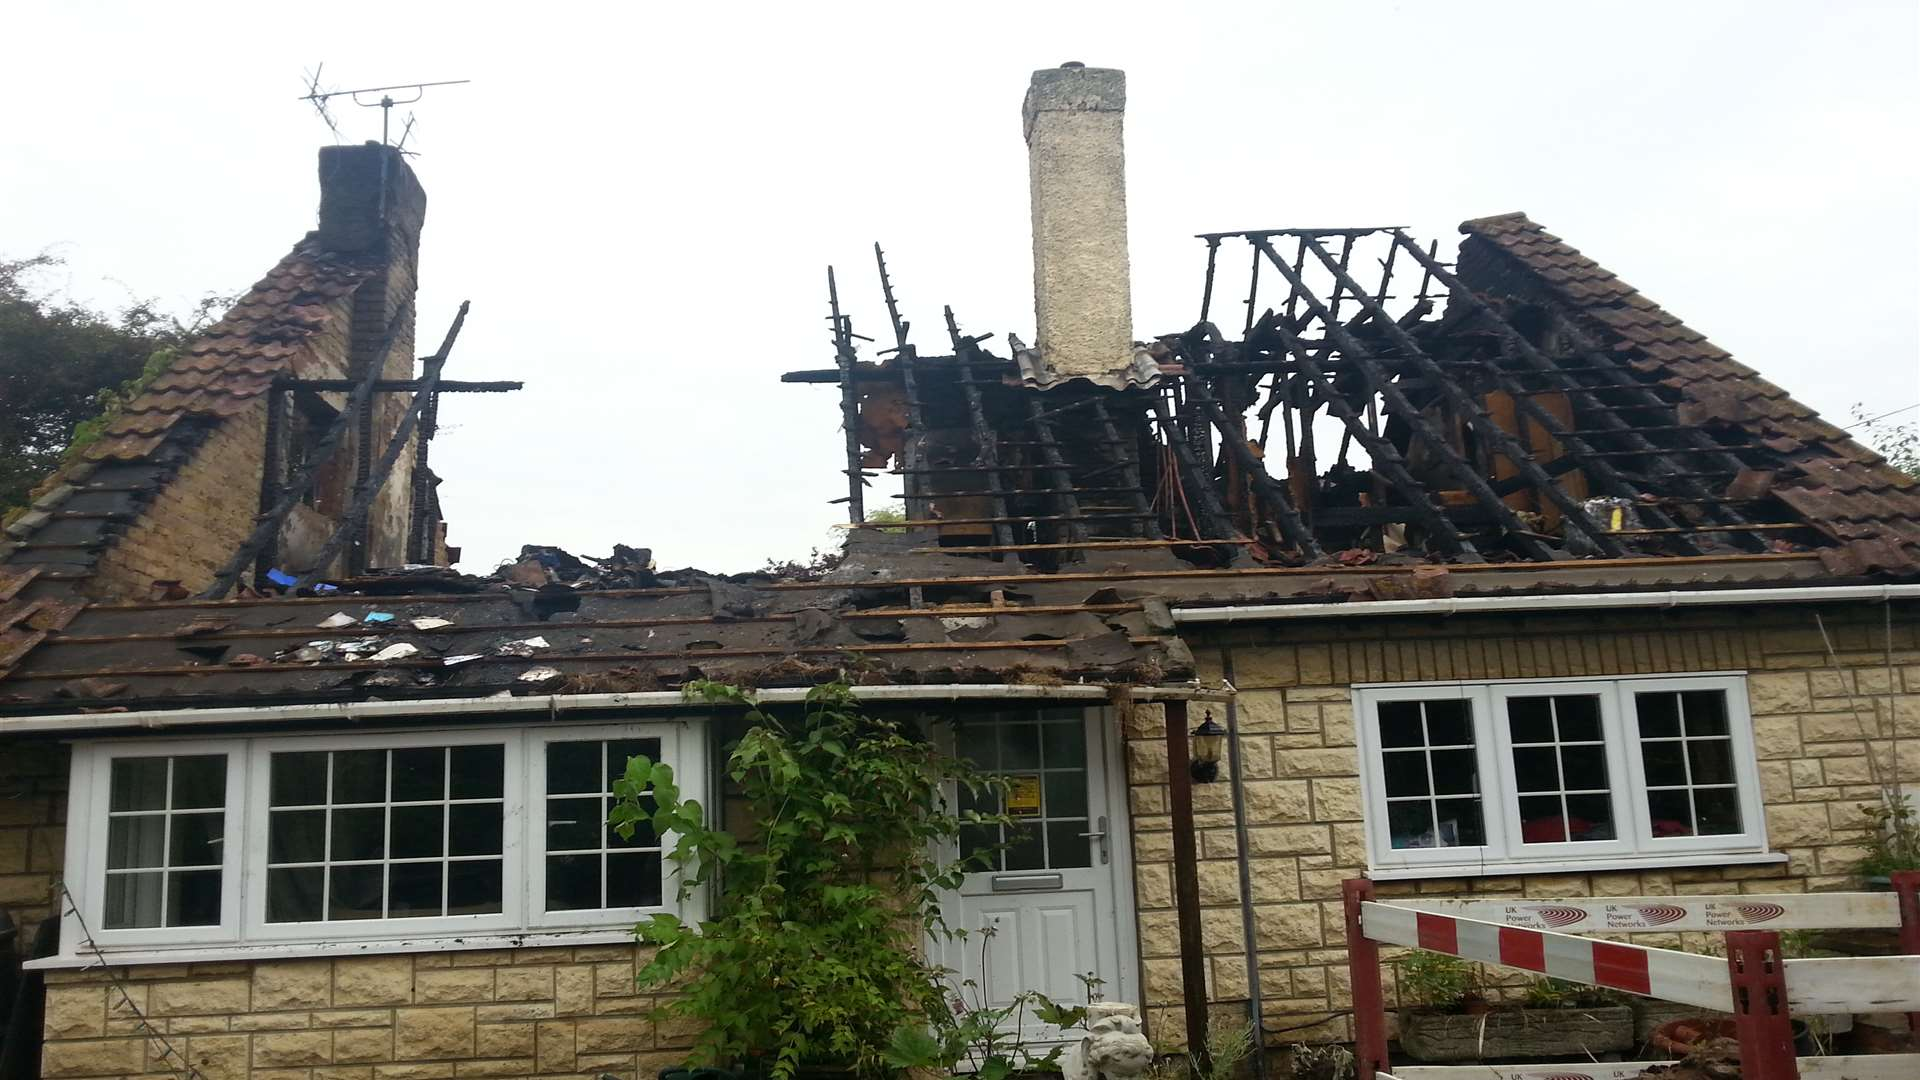 The lightning strike has destroyed the home in South Street